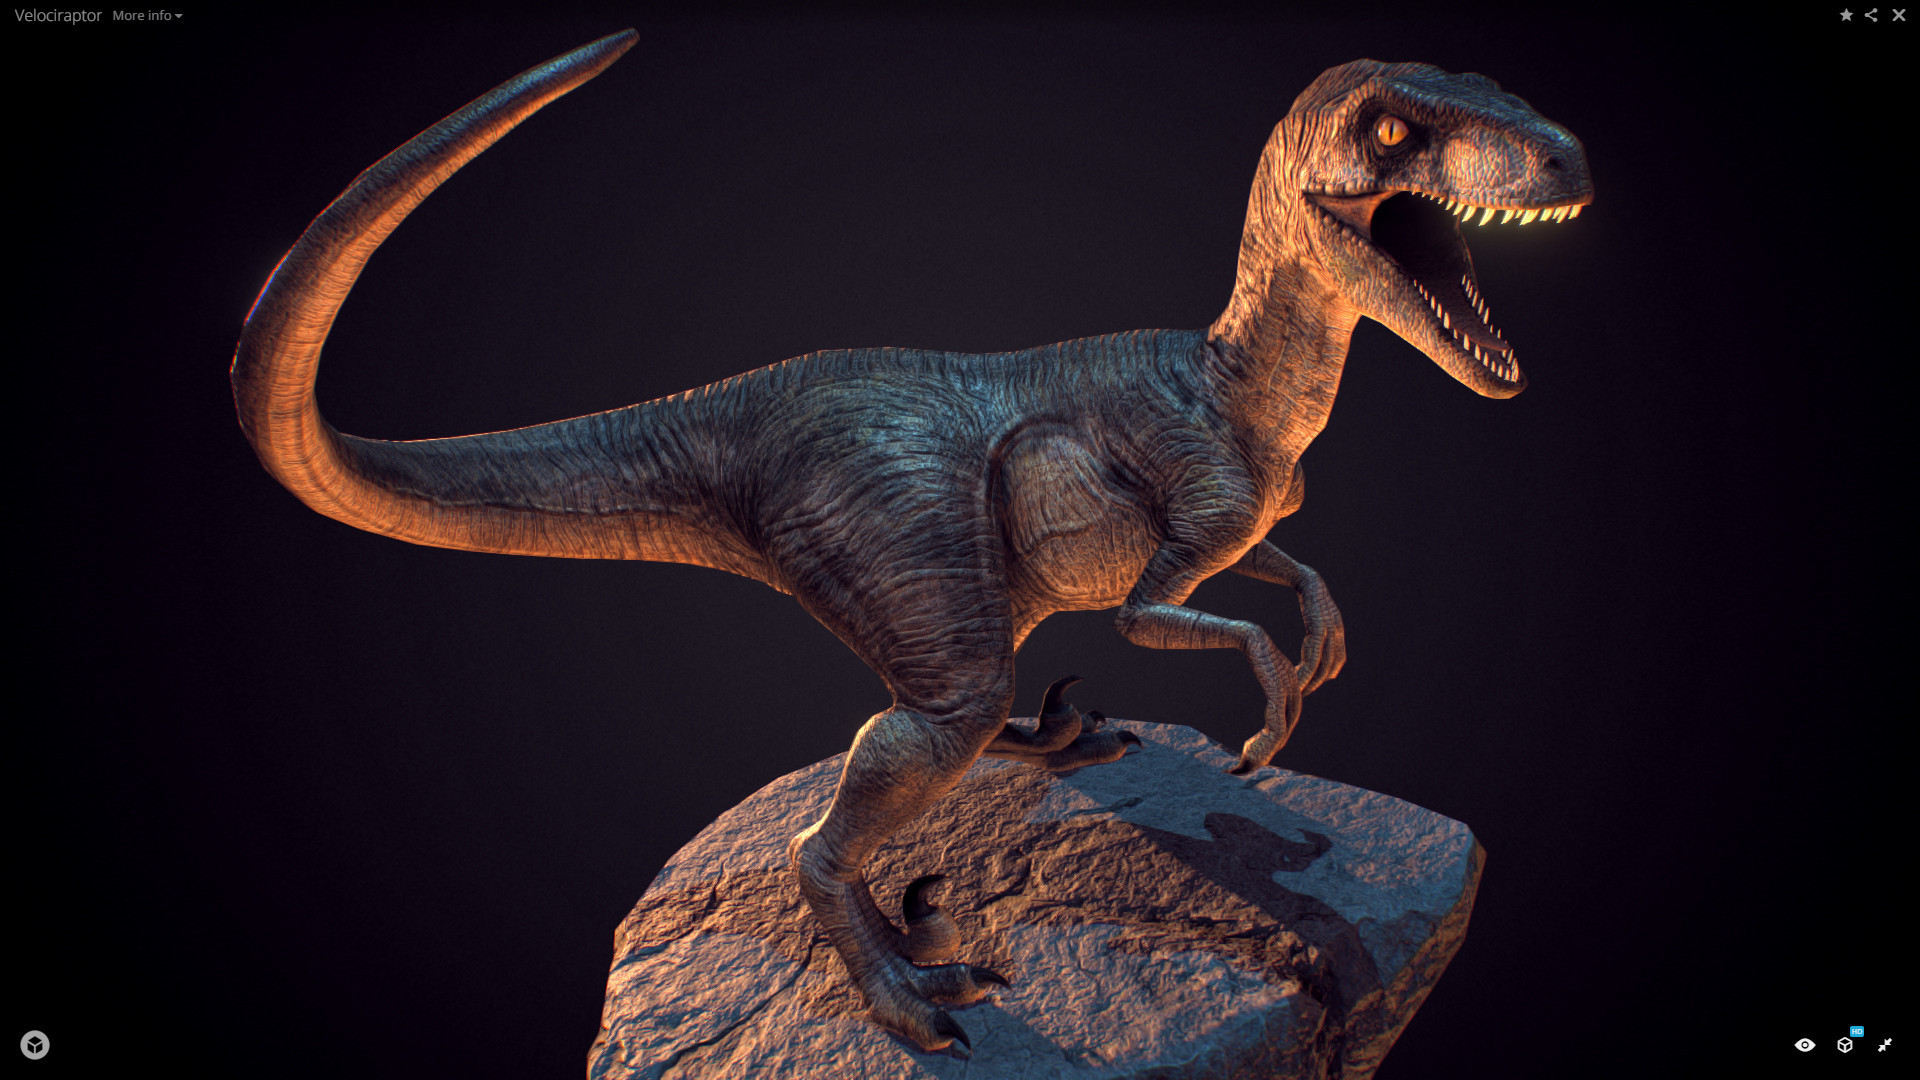 Jurassic world velociraptor